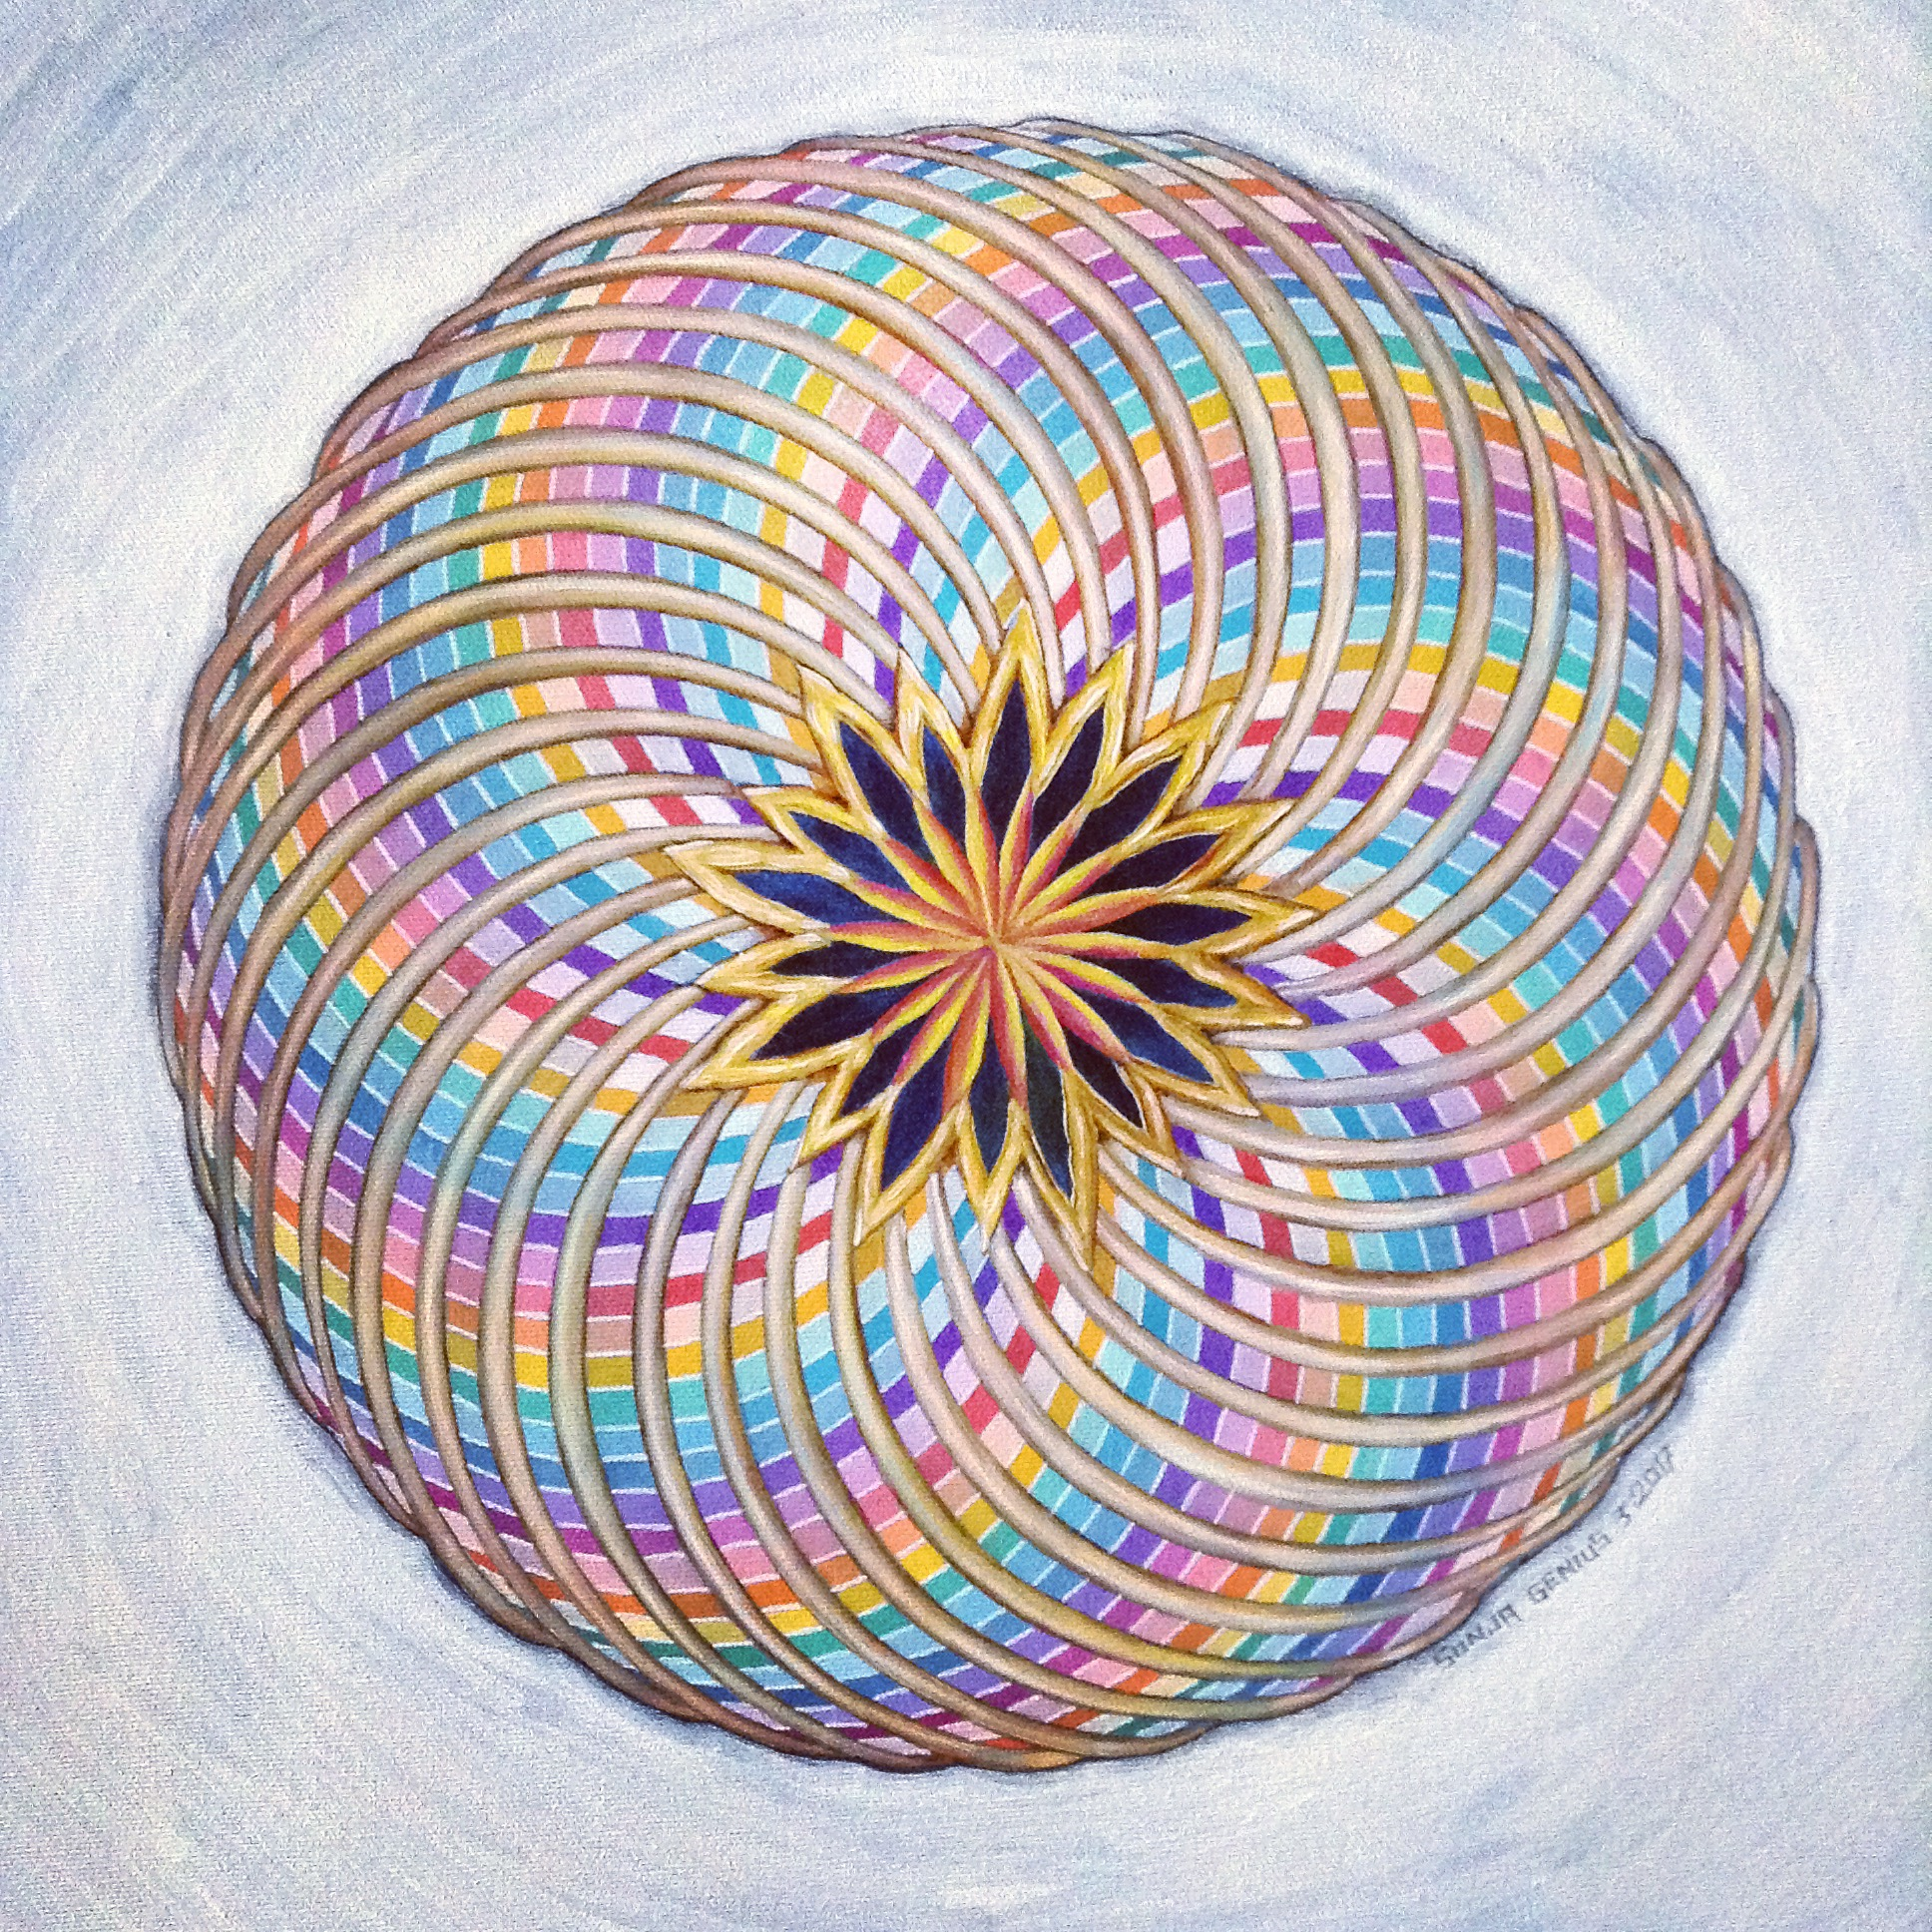 Torus, oil on canvas 16x16, March 2017 (4)